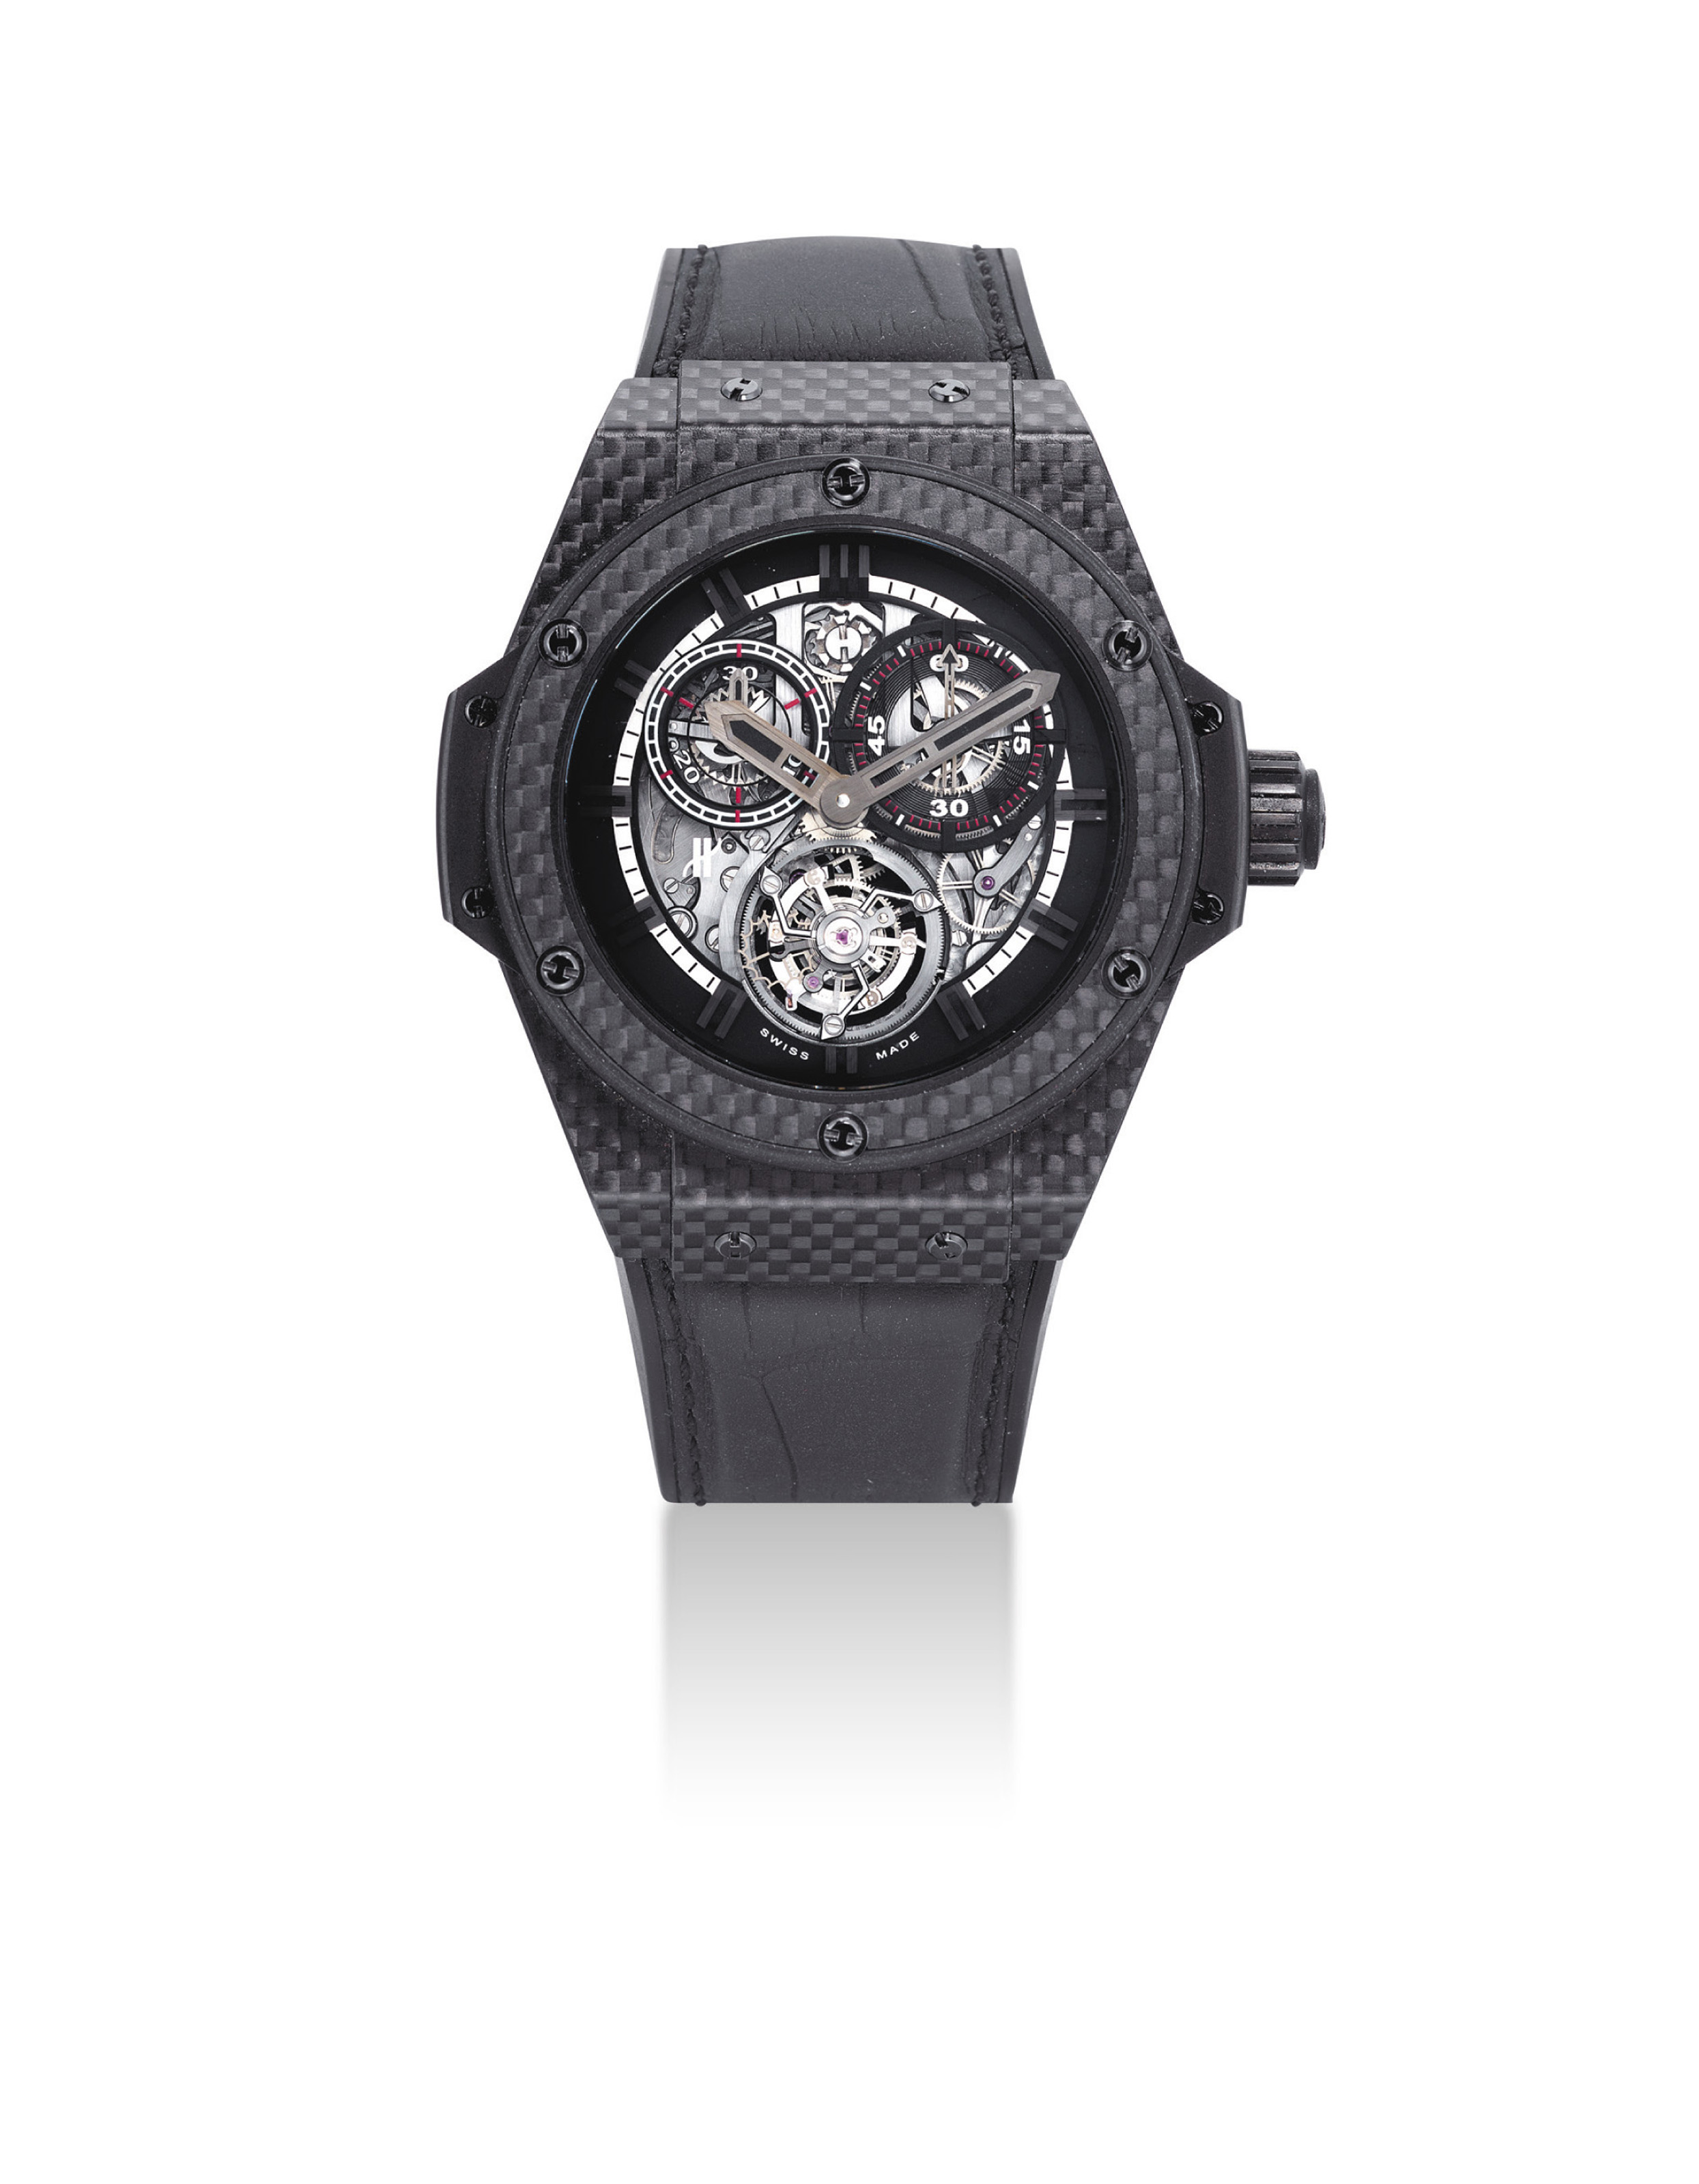 HUBLOT. A FINE AND VERY RARE CARBON FIBRE LIMITED EDITION SEMI-SKELETONISED MINUTE REPEATING SINGLE BUTTON CHRONOGRAPH TOURBILLION WRISTWATCH